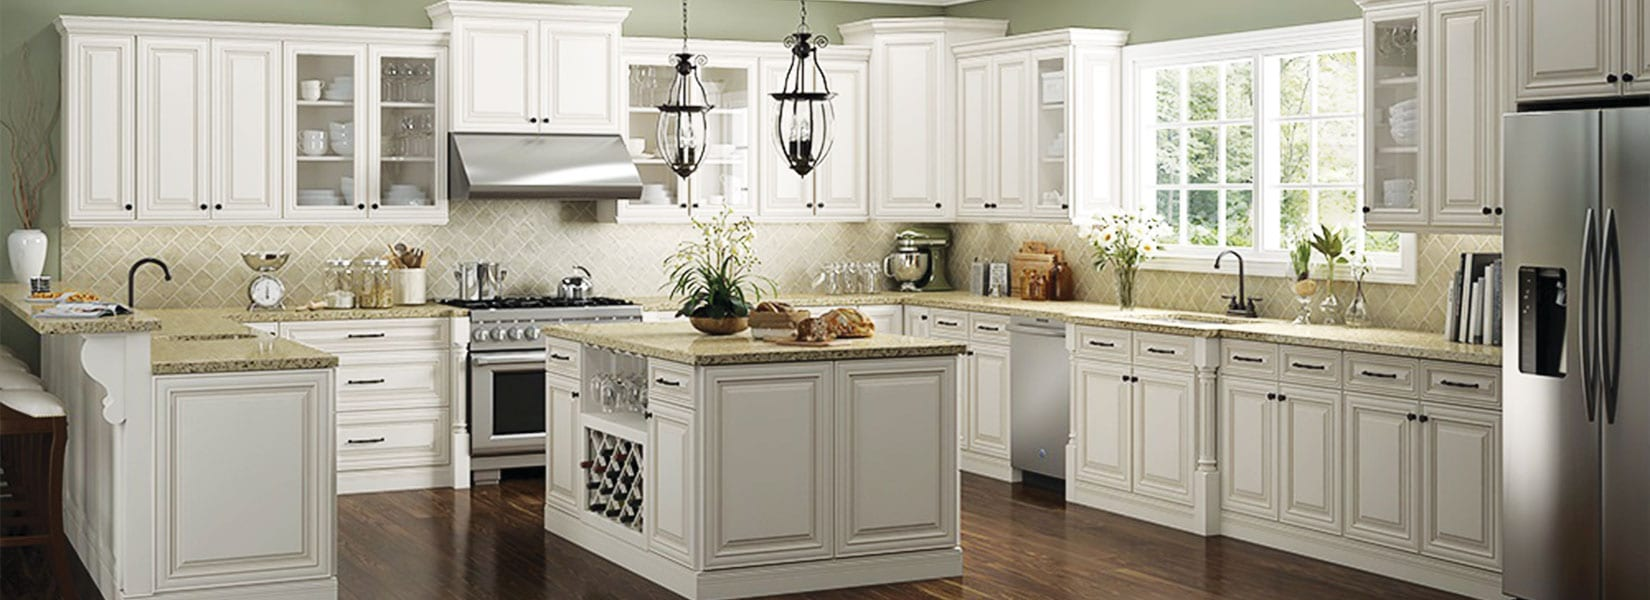 Kitchen Cabinets Ready For You